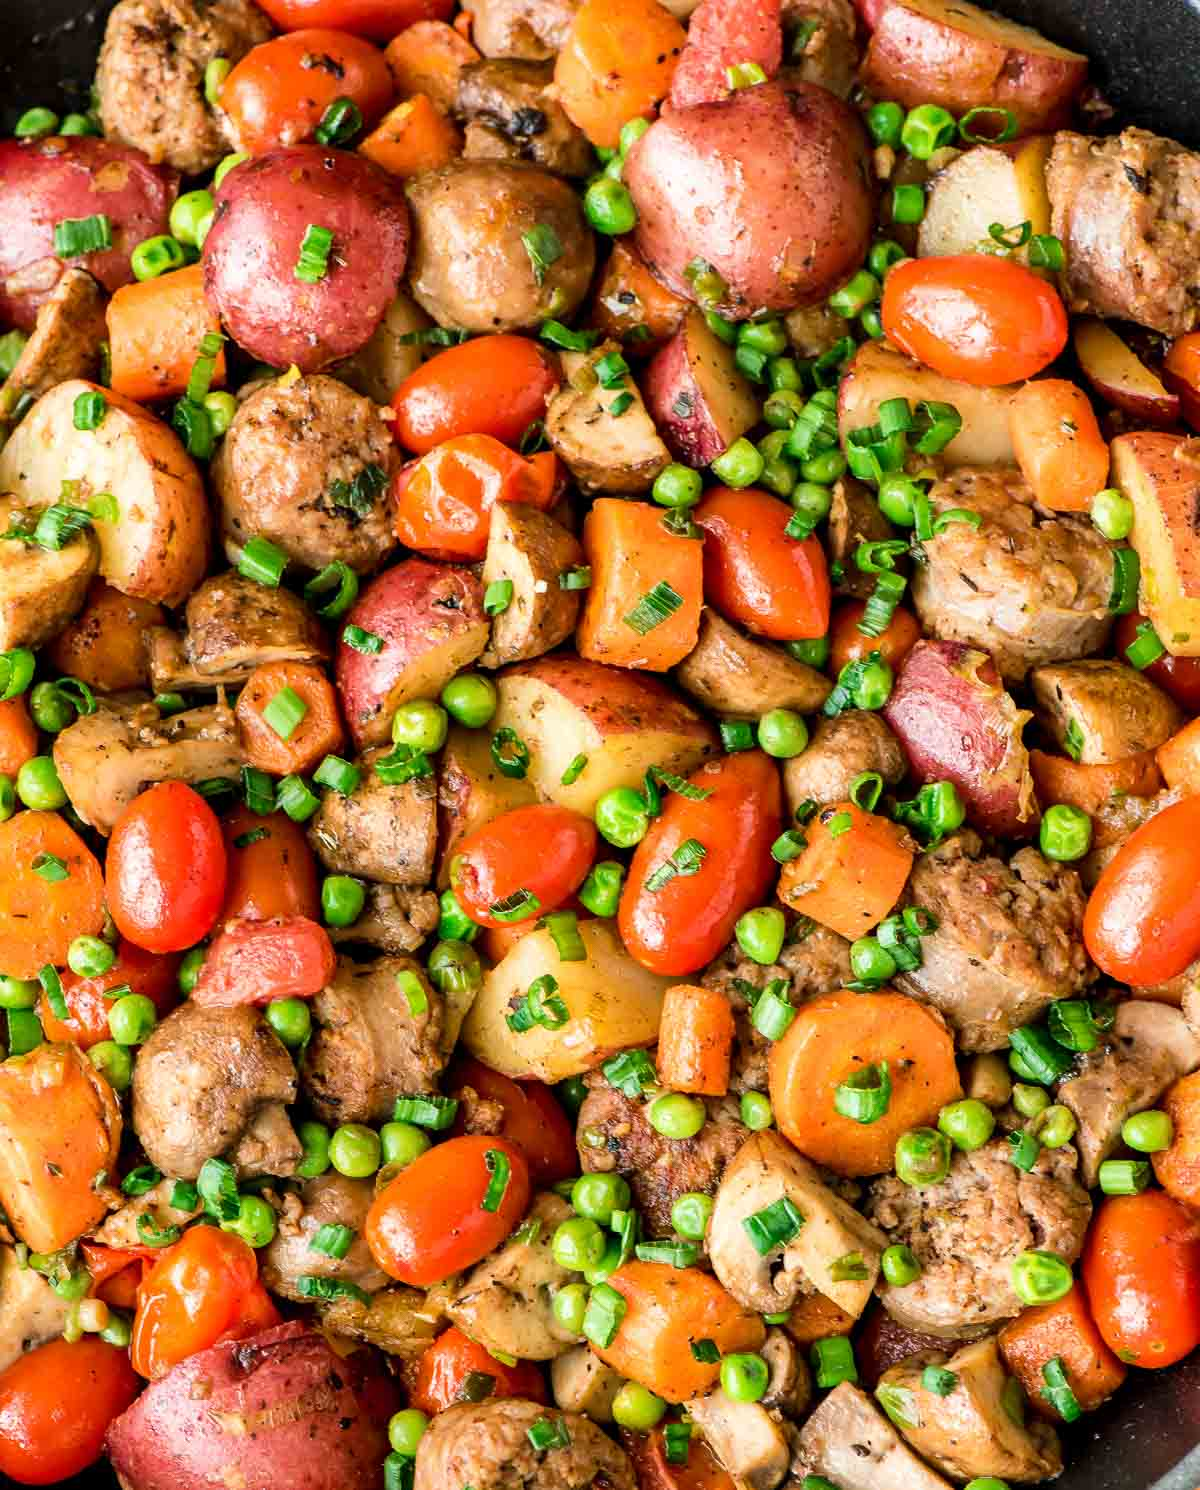 Italian sausage skillet with vegetables and potatoes this italian sausage potato and veggie skillet is a delicious and easy dinner recipe forumfinder Choice Image